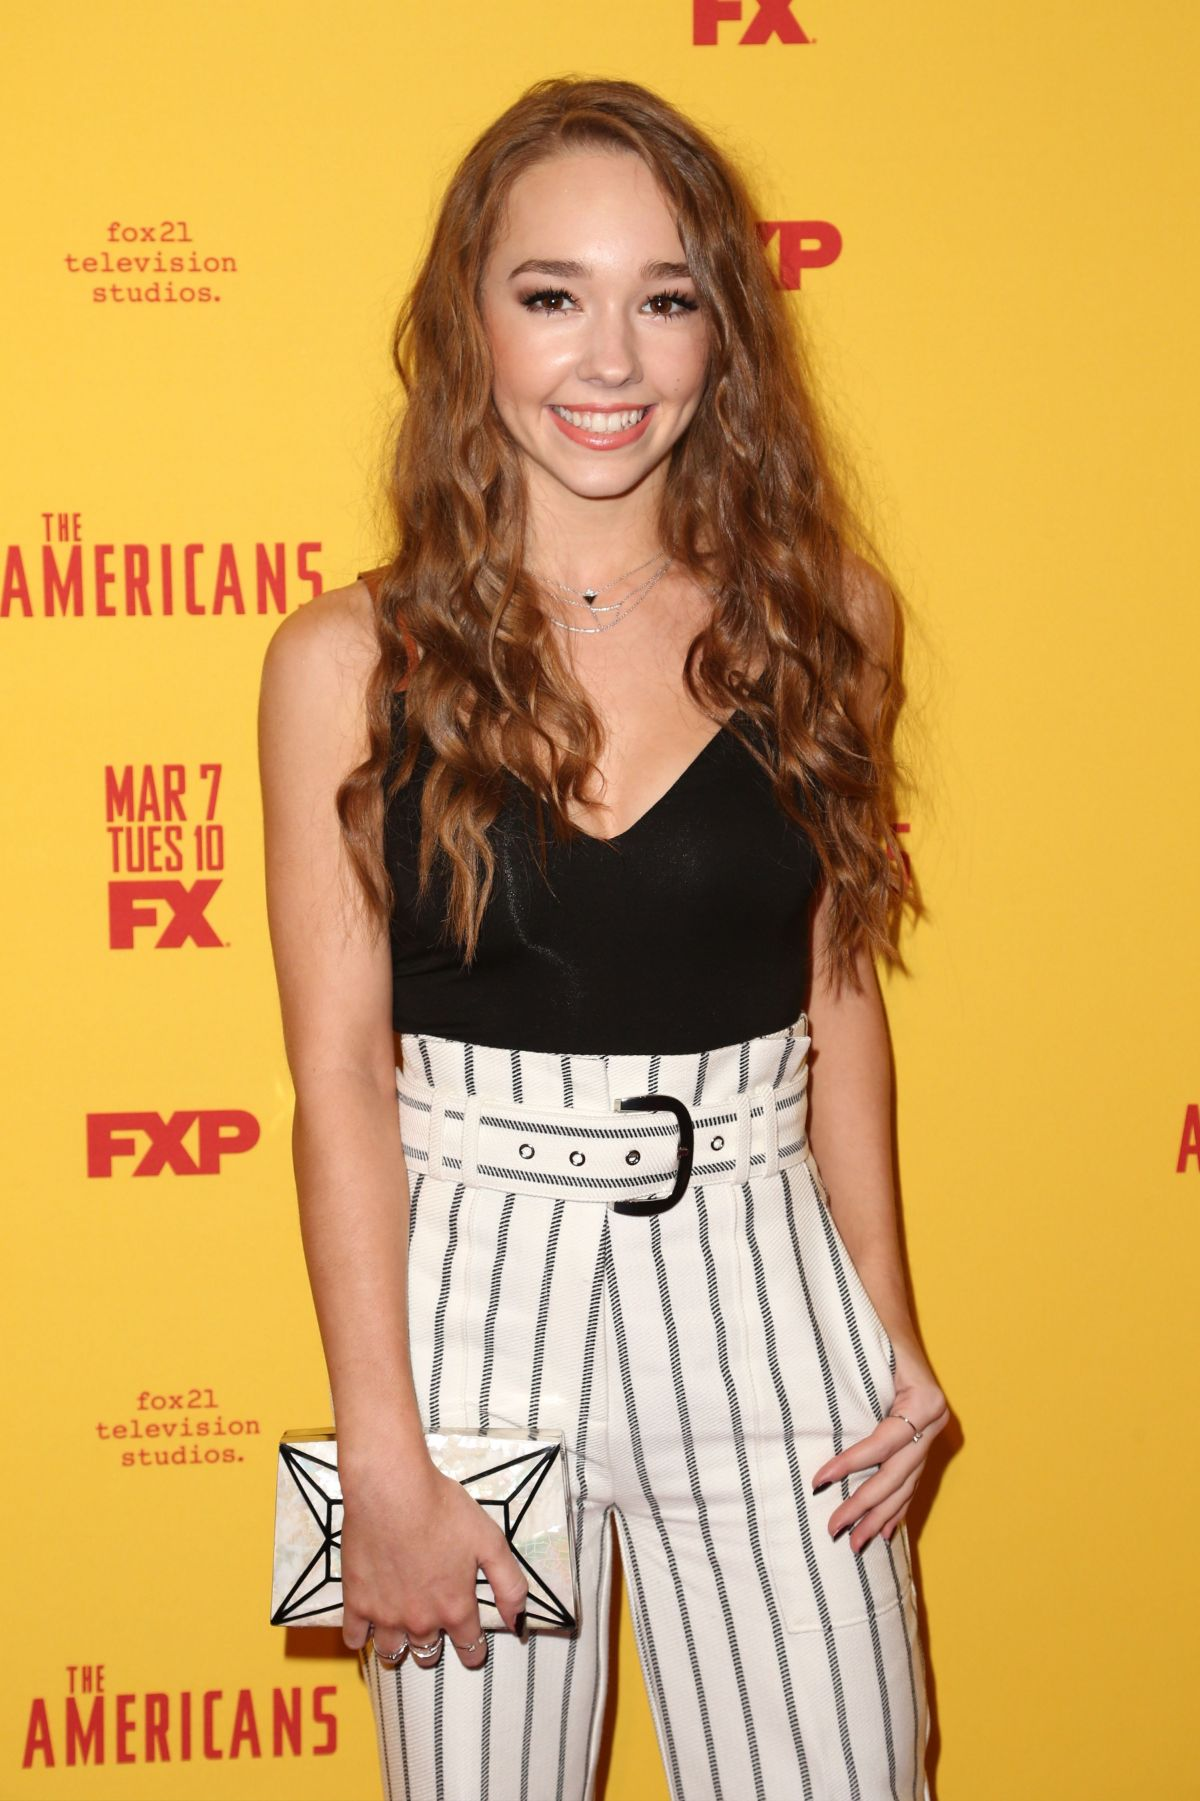 HOLLY TAYLOR at The Americans Season 5 Premiere in New York 02/25/2017